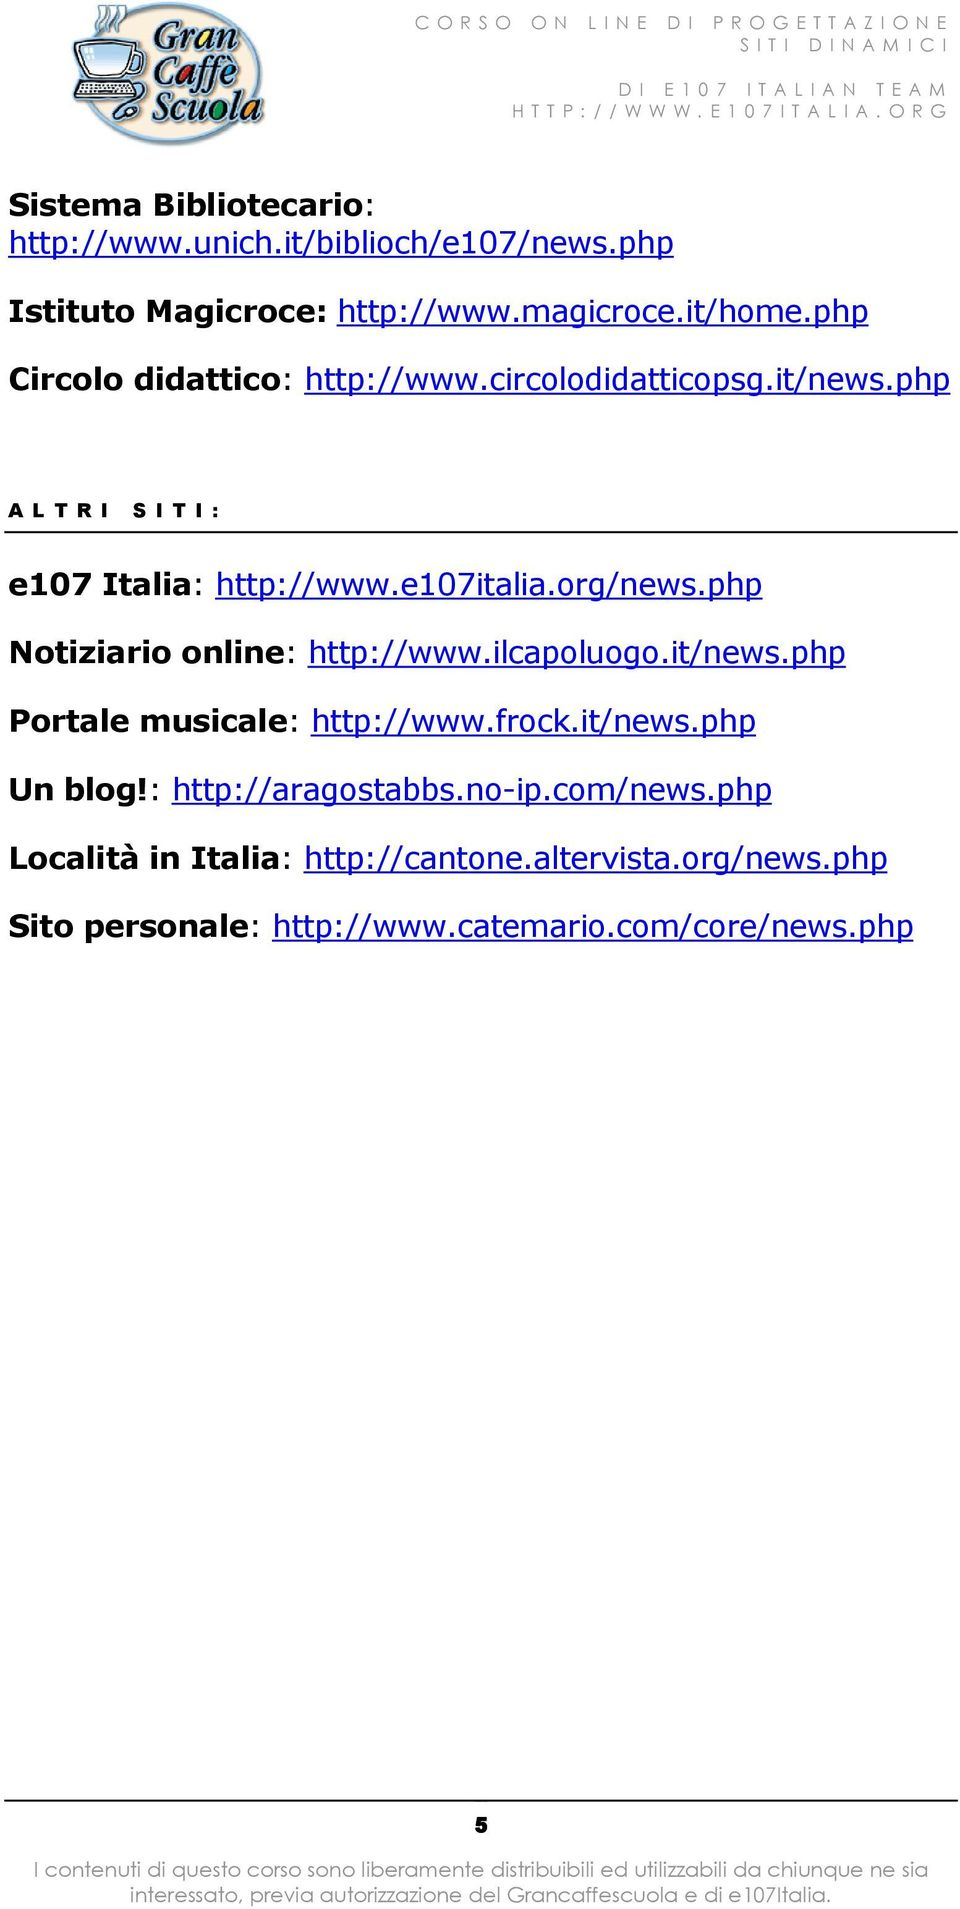 org/news.php Notiziario online: http://www.ilcapoluogo.it/news.php Portale musicale: http://www.frock.it/news.php Un blog!